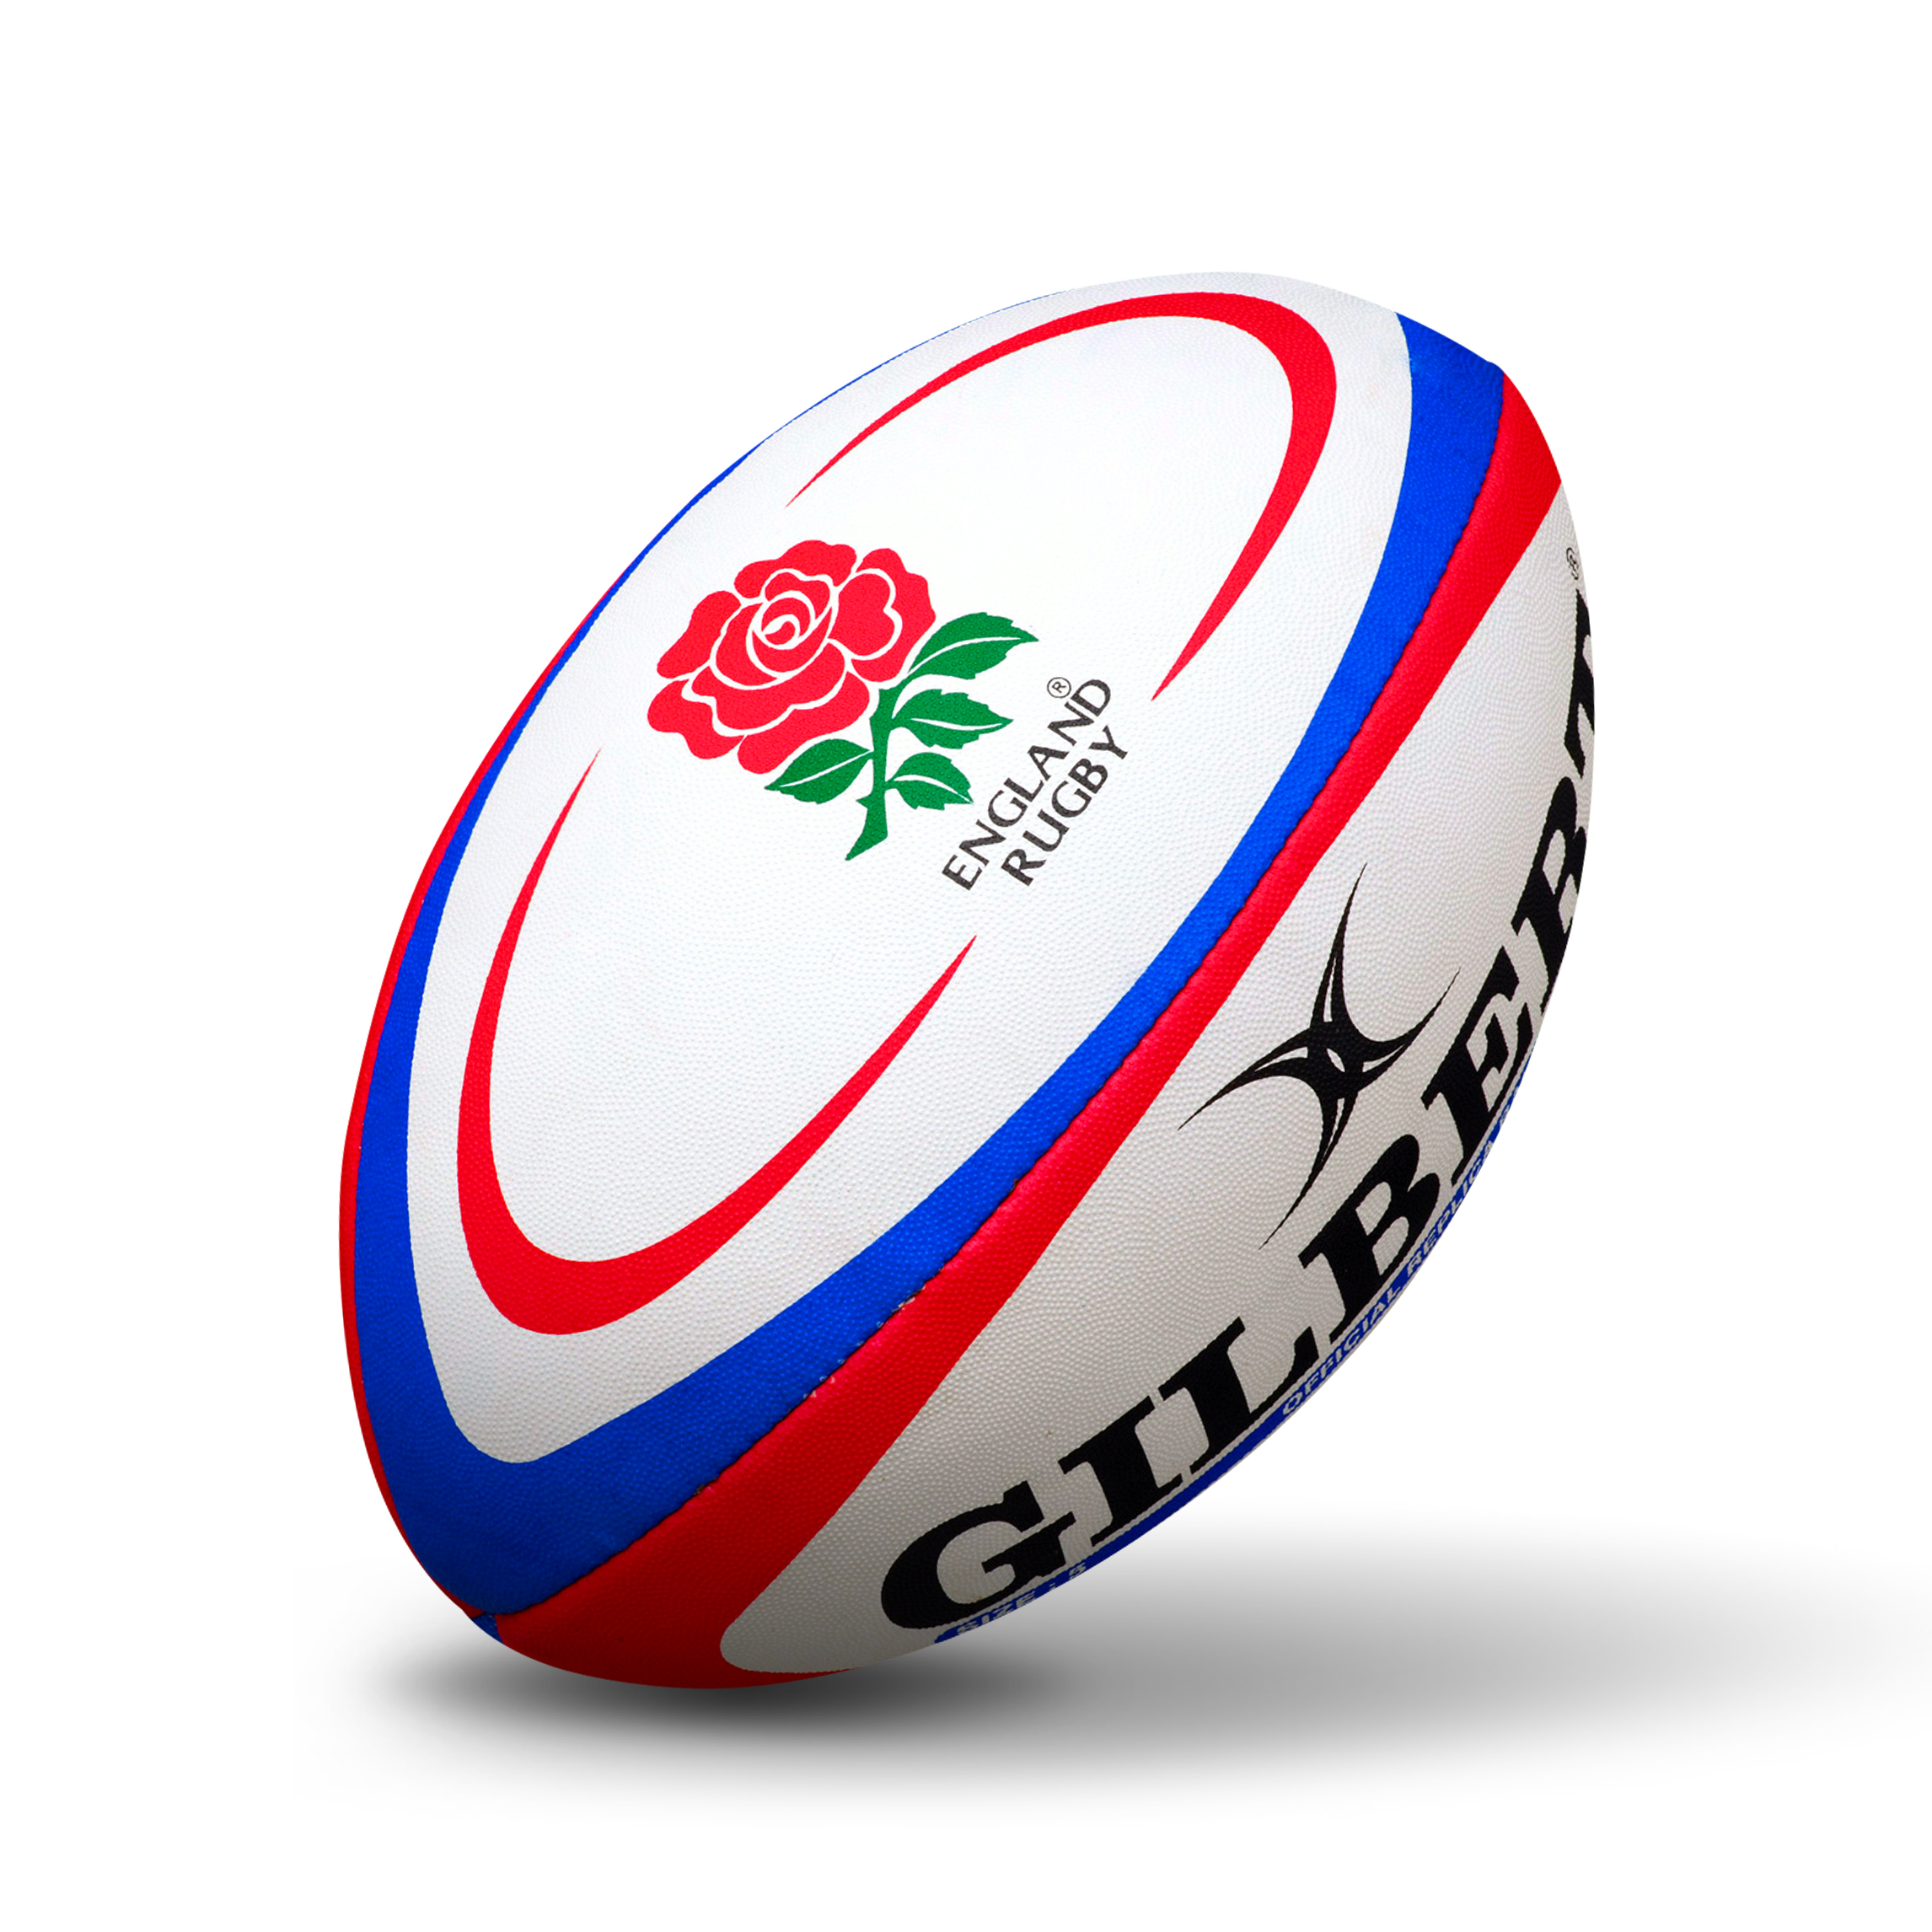 Gilbert England Rugby International Replica Ball - Size 5 - White/Red